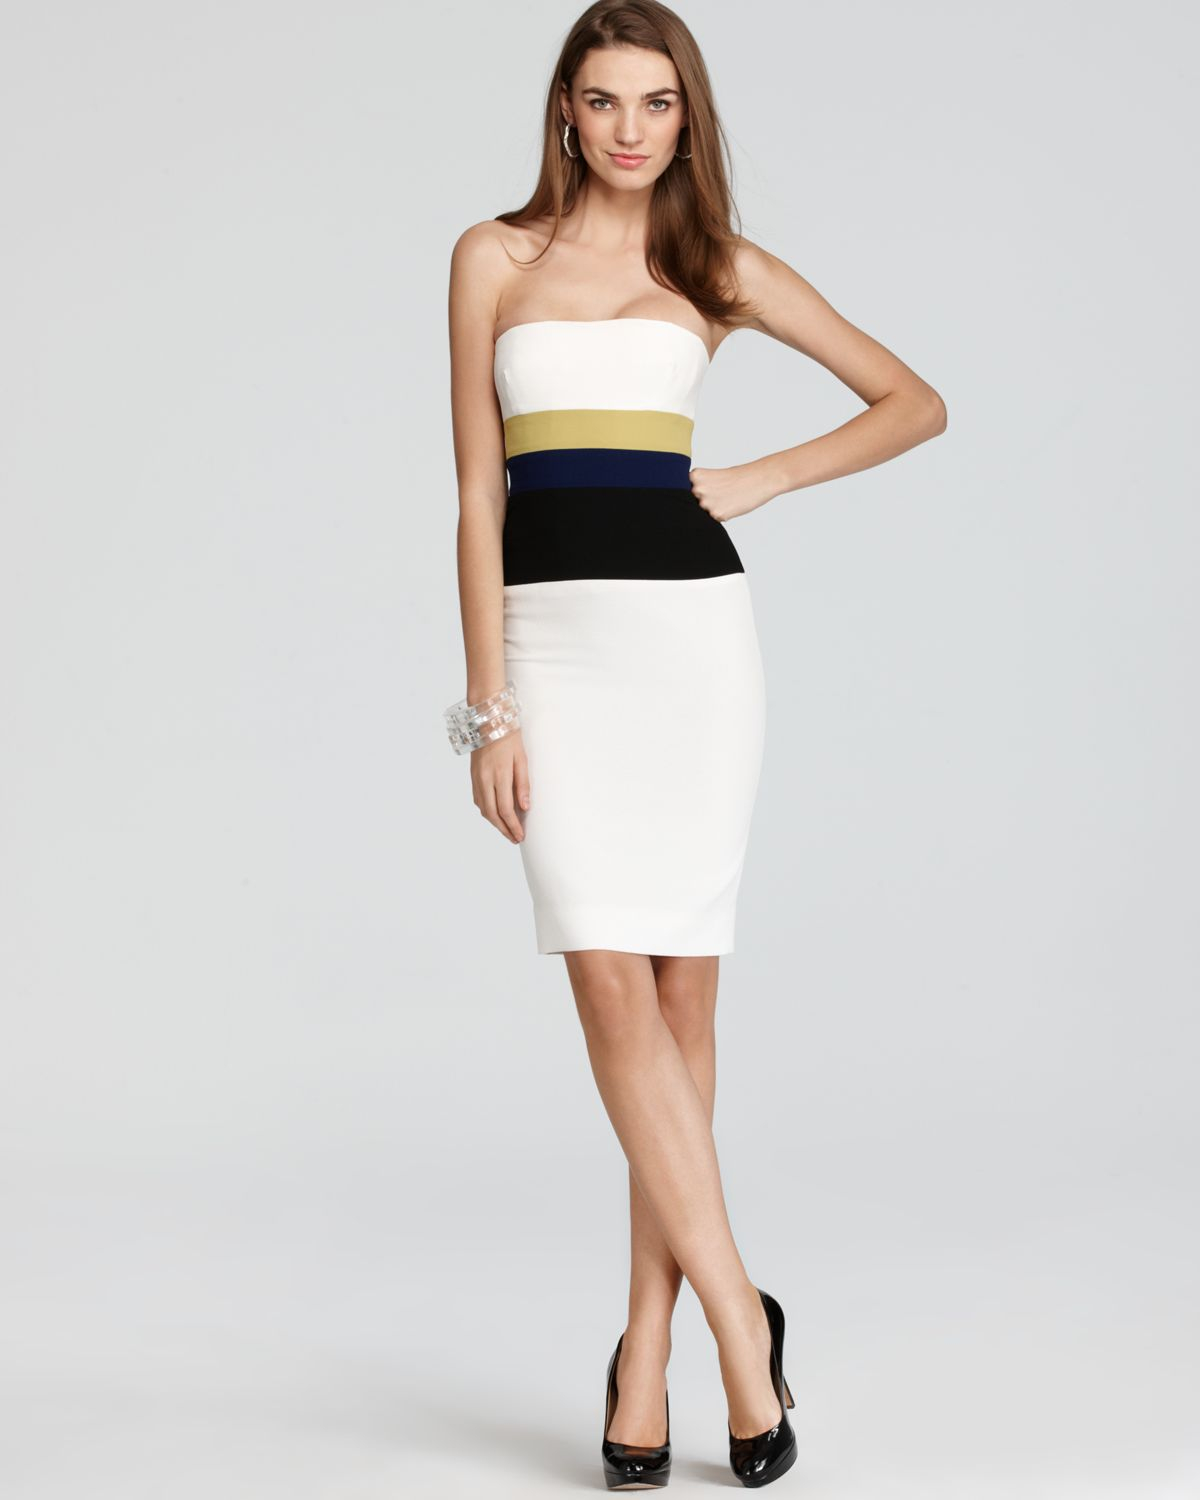 Bcbgmaxazria Strapless Dress - Color Block in White  Lyst